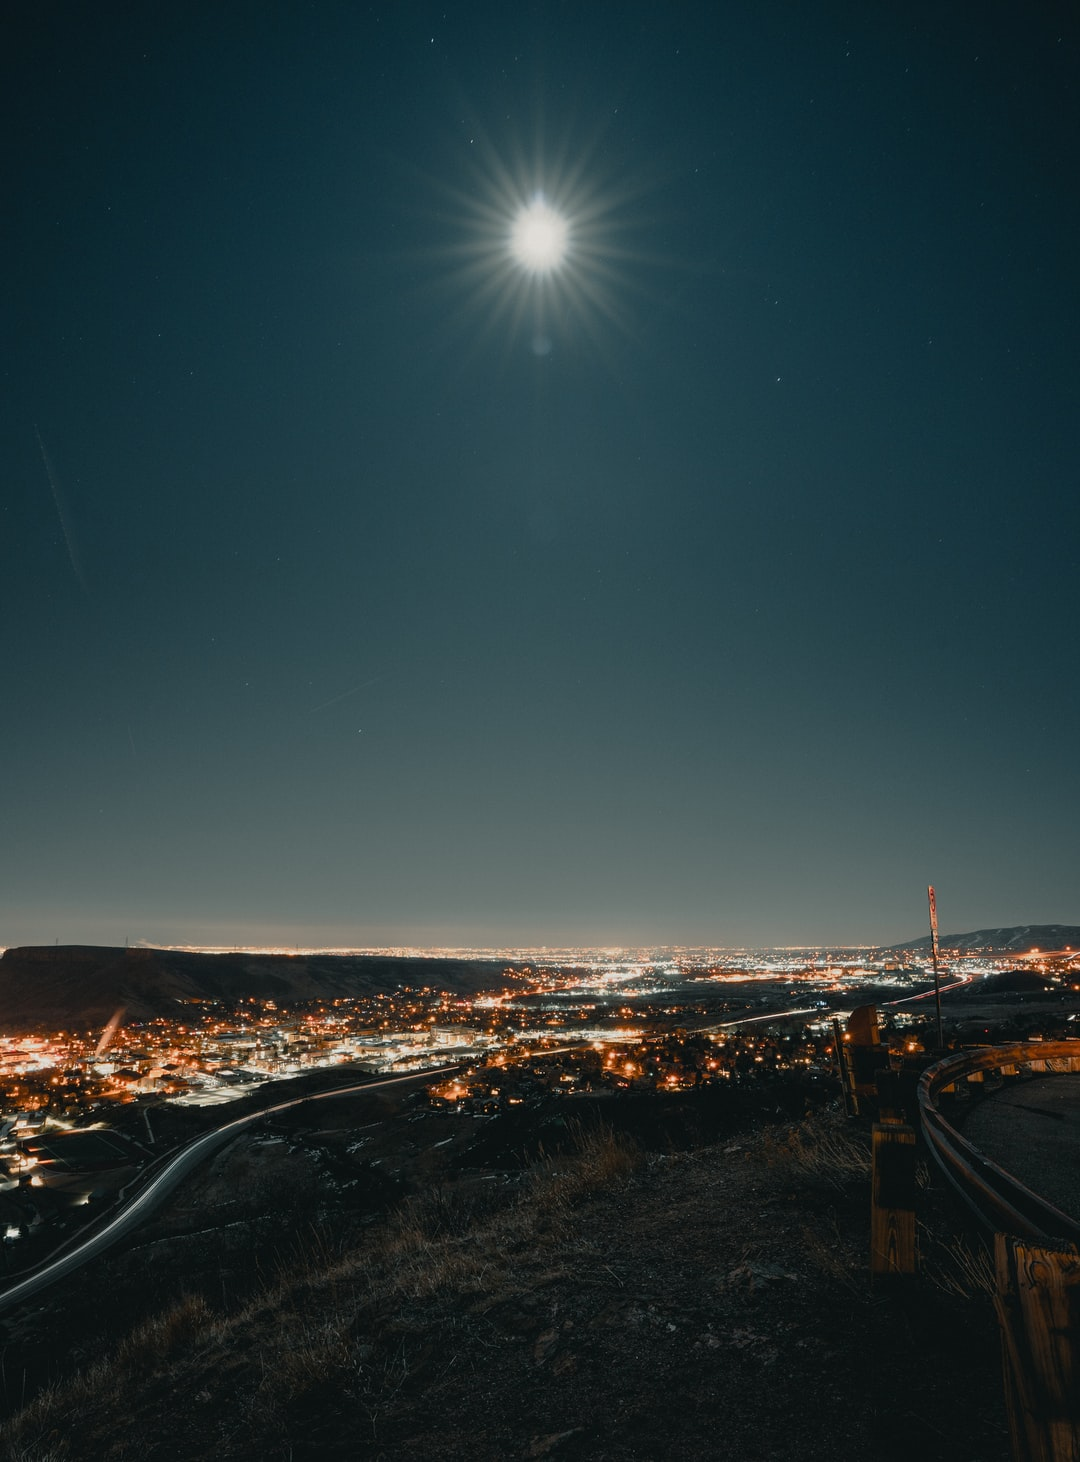 A quick stop at the Golden's Lookout point, plus full moon! [ IG: @clay.banks ]